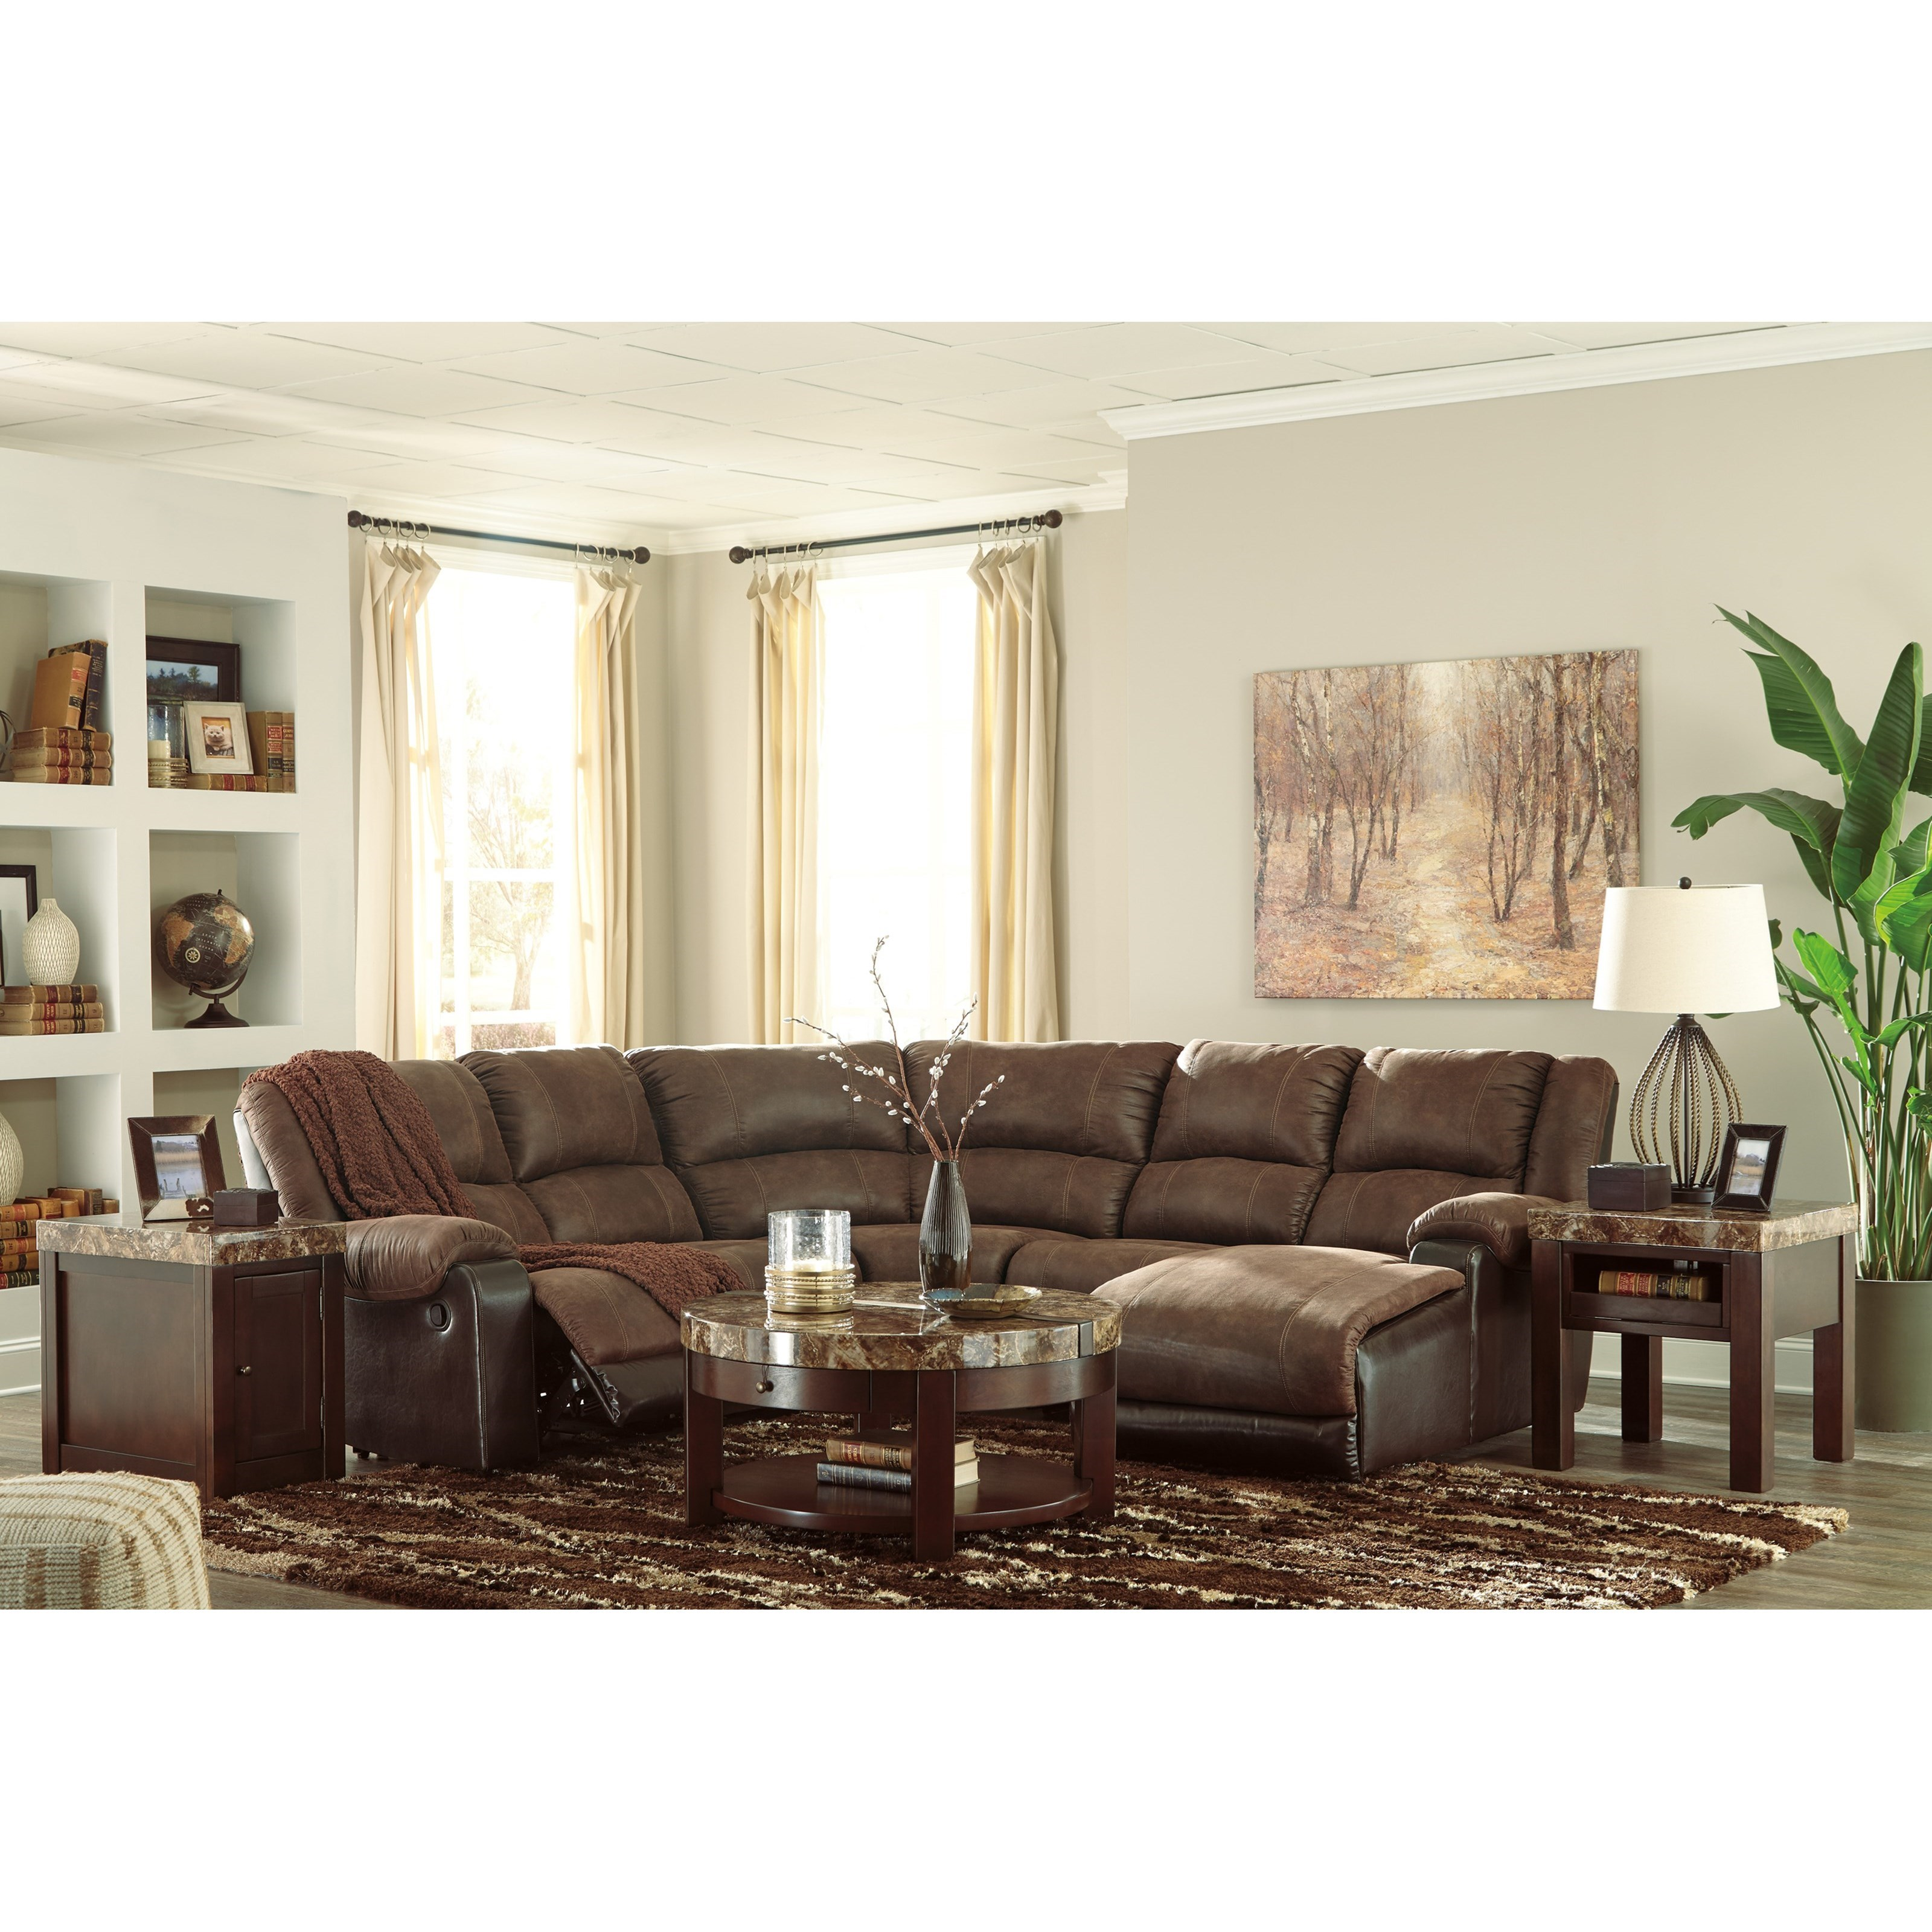 Value City Furniture Living Room Sets >> Signature Design by Ashley Nantahala Faux Leather Reclining Sectional with Chaise | Value City ...